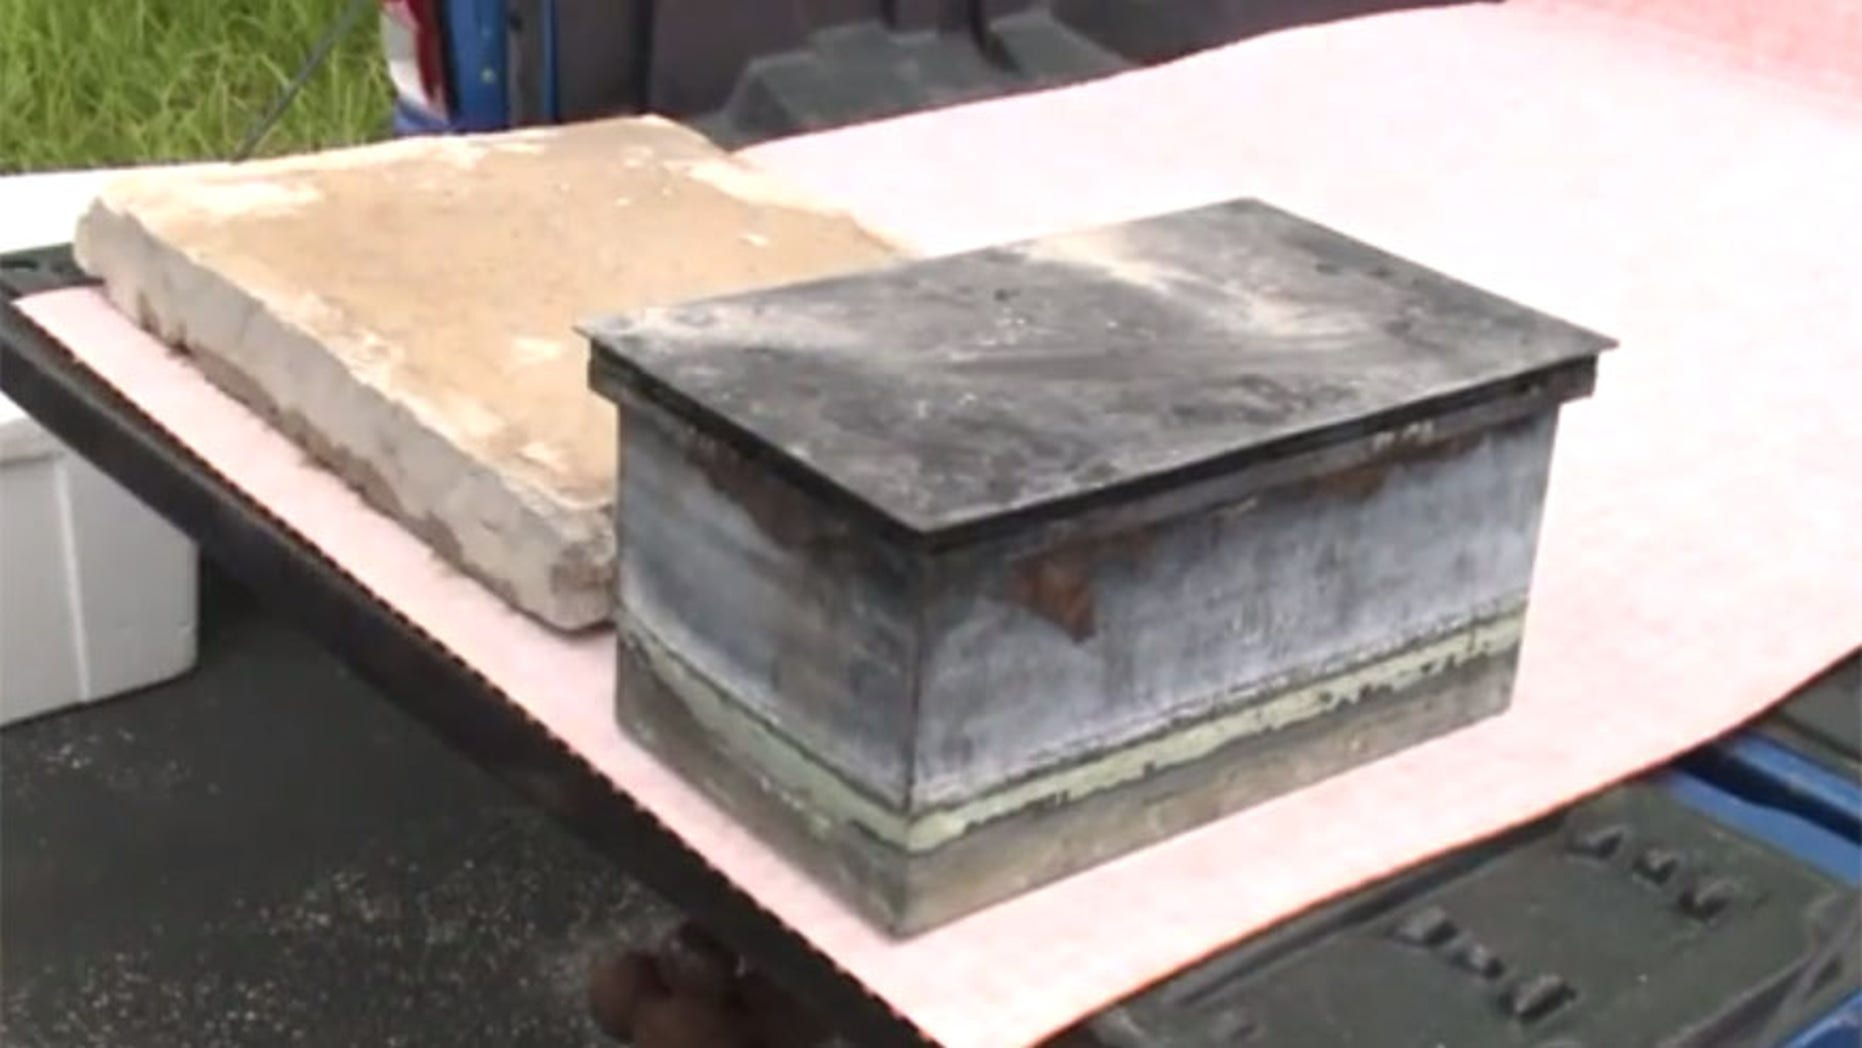 Time capsule recovered from under the controversial Confederate Memorial in St. Louis.